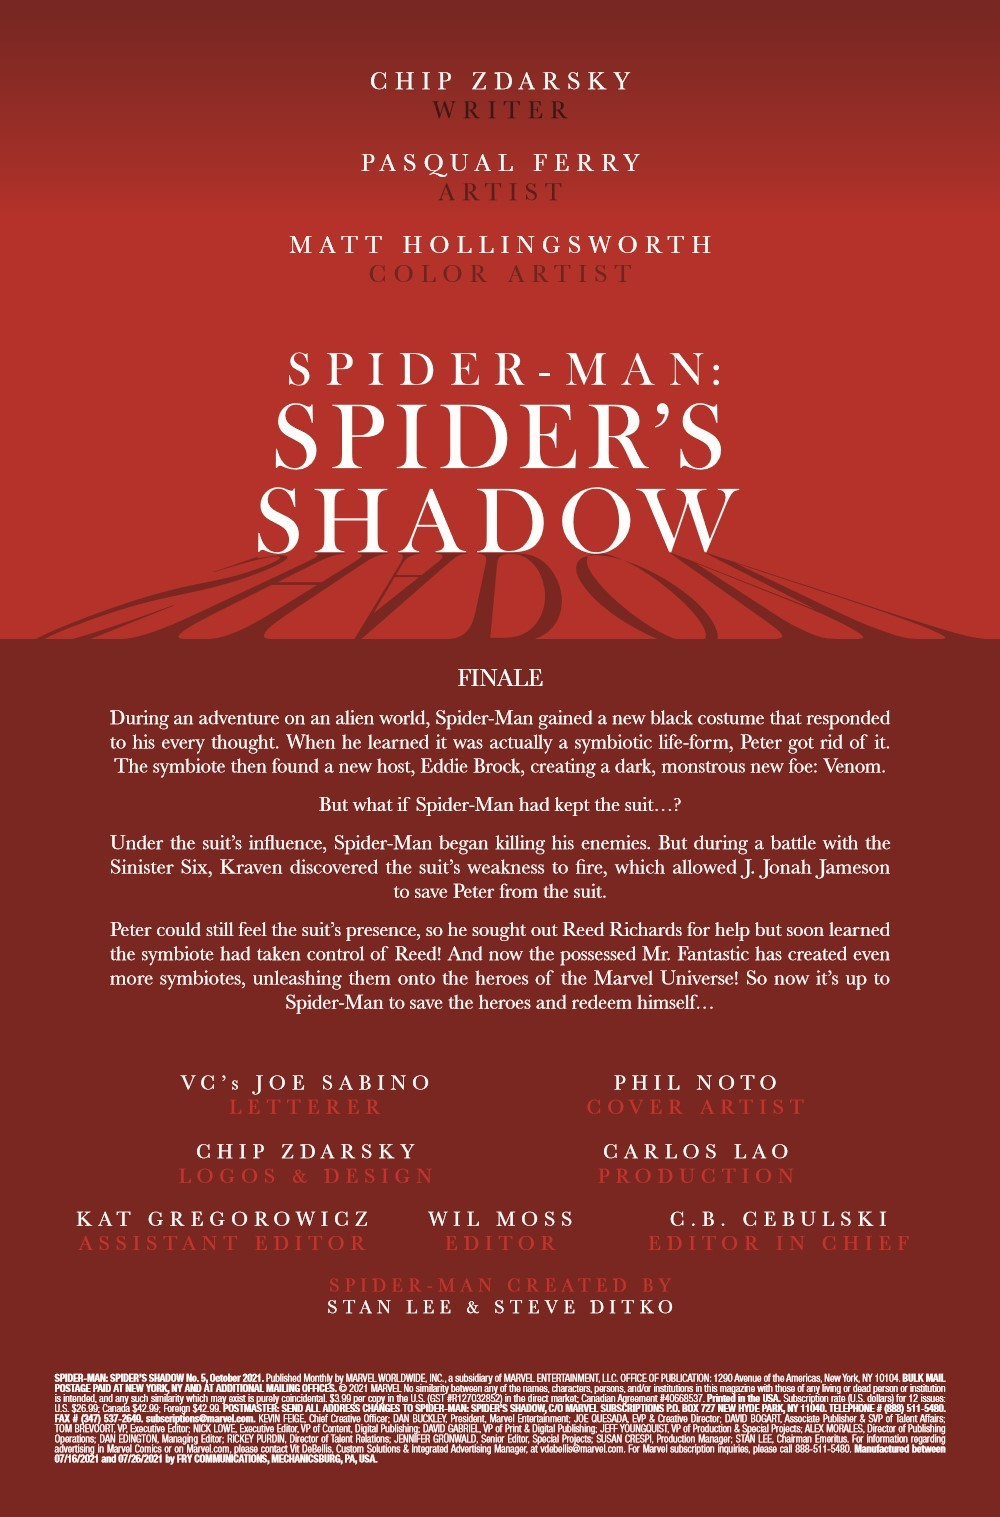 SMSPIDERSHADOW2021005_Preview-2 ComicList Previews: SPIDER-MAN SPIDER'S SHADOW #5 (OF 5)